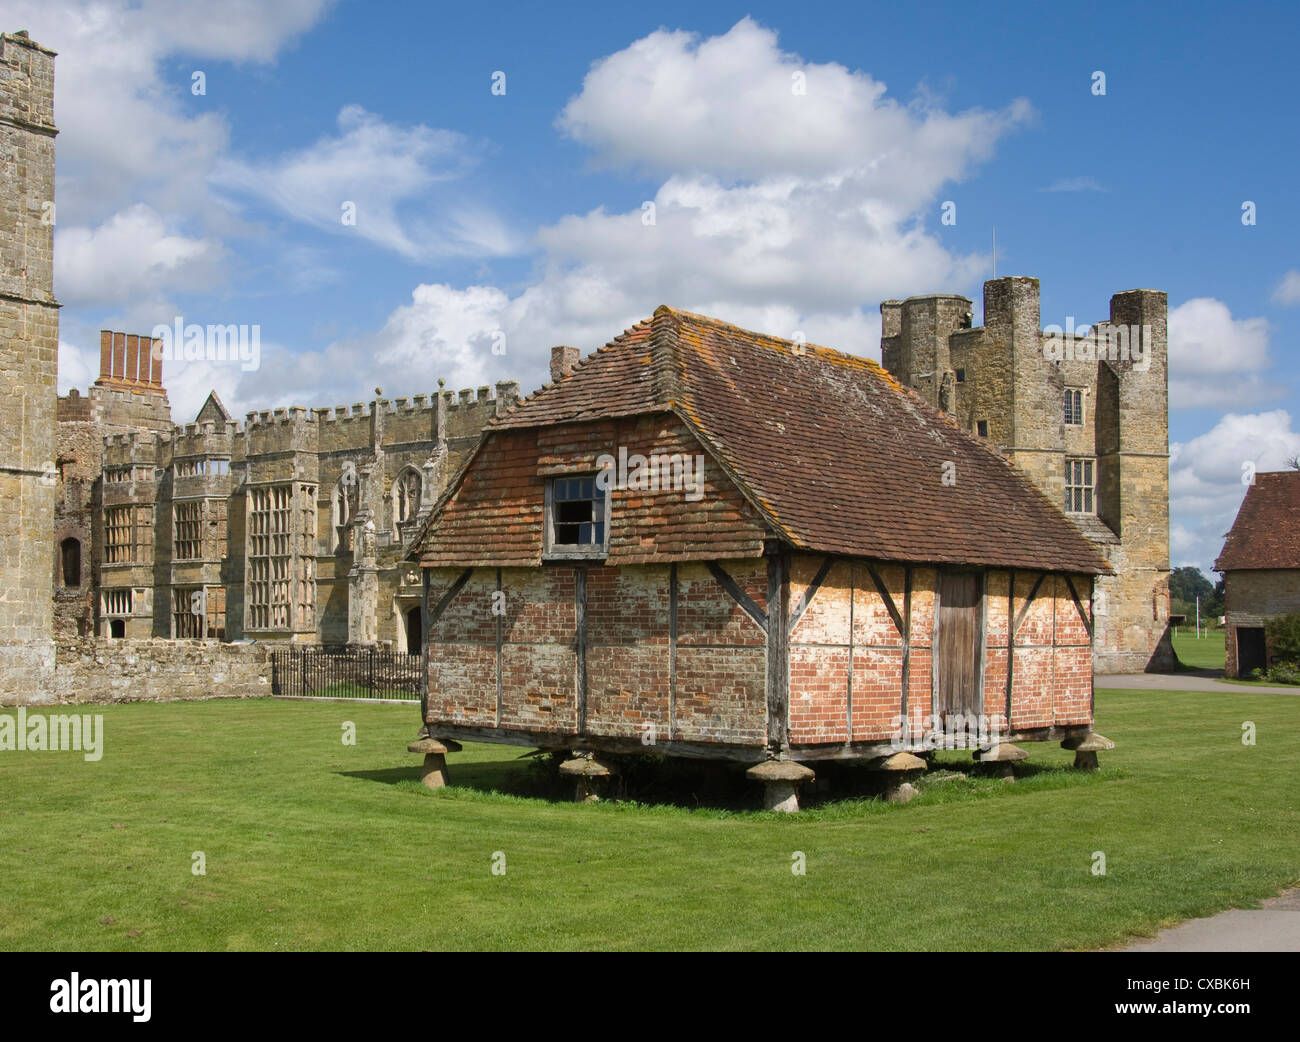 A Medieval granary, set on toadstools to prevent access by rats, Cowdray Castle, Midhurst, West Sussex - Stock Image